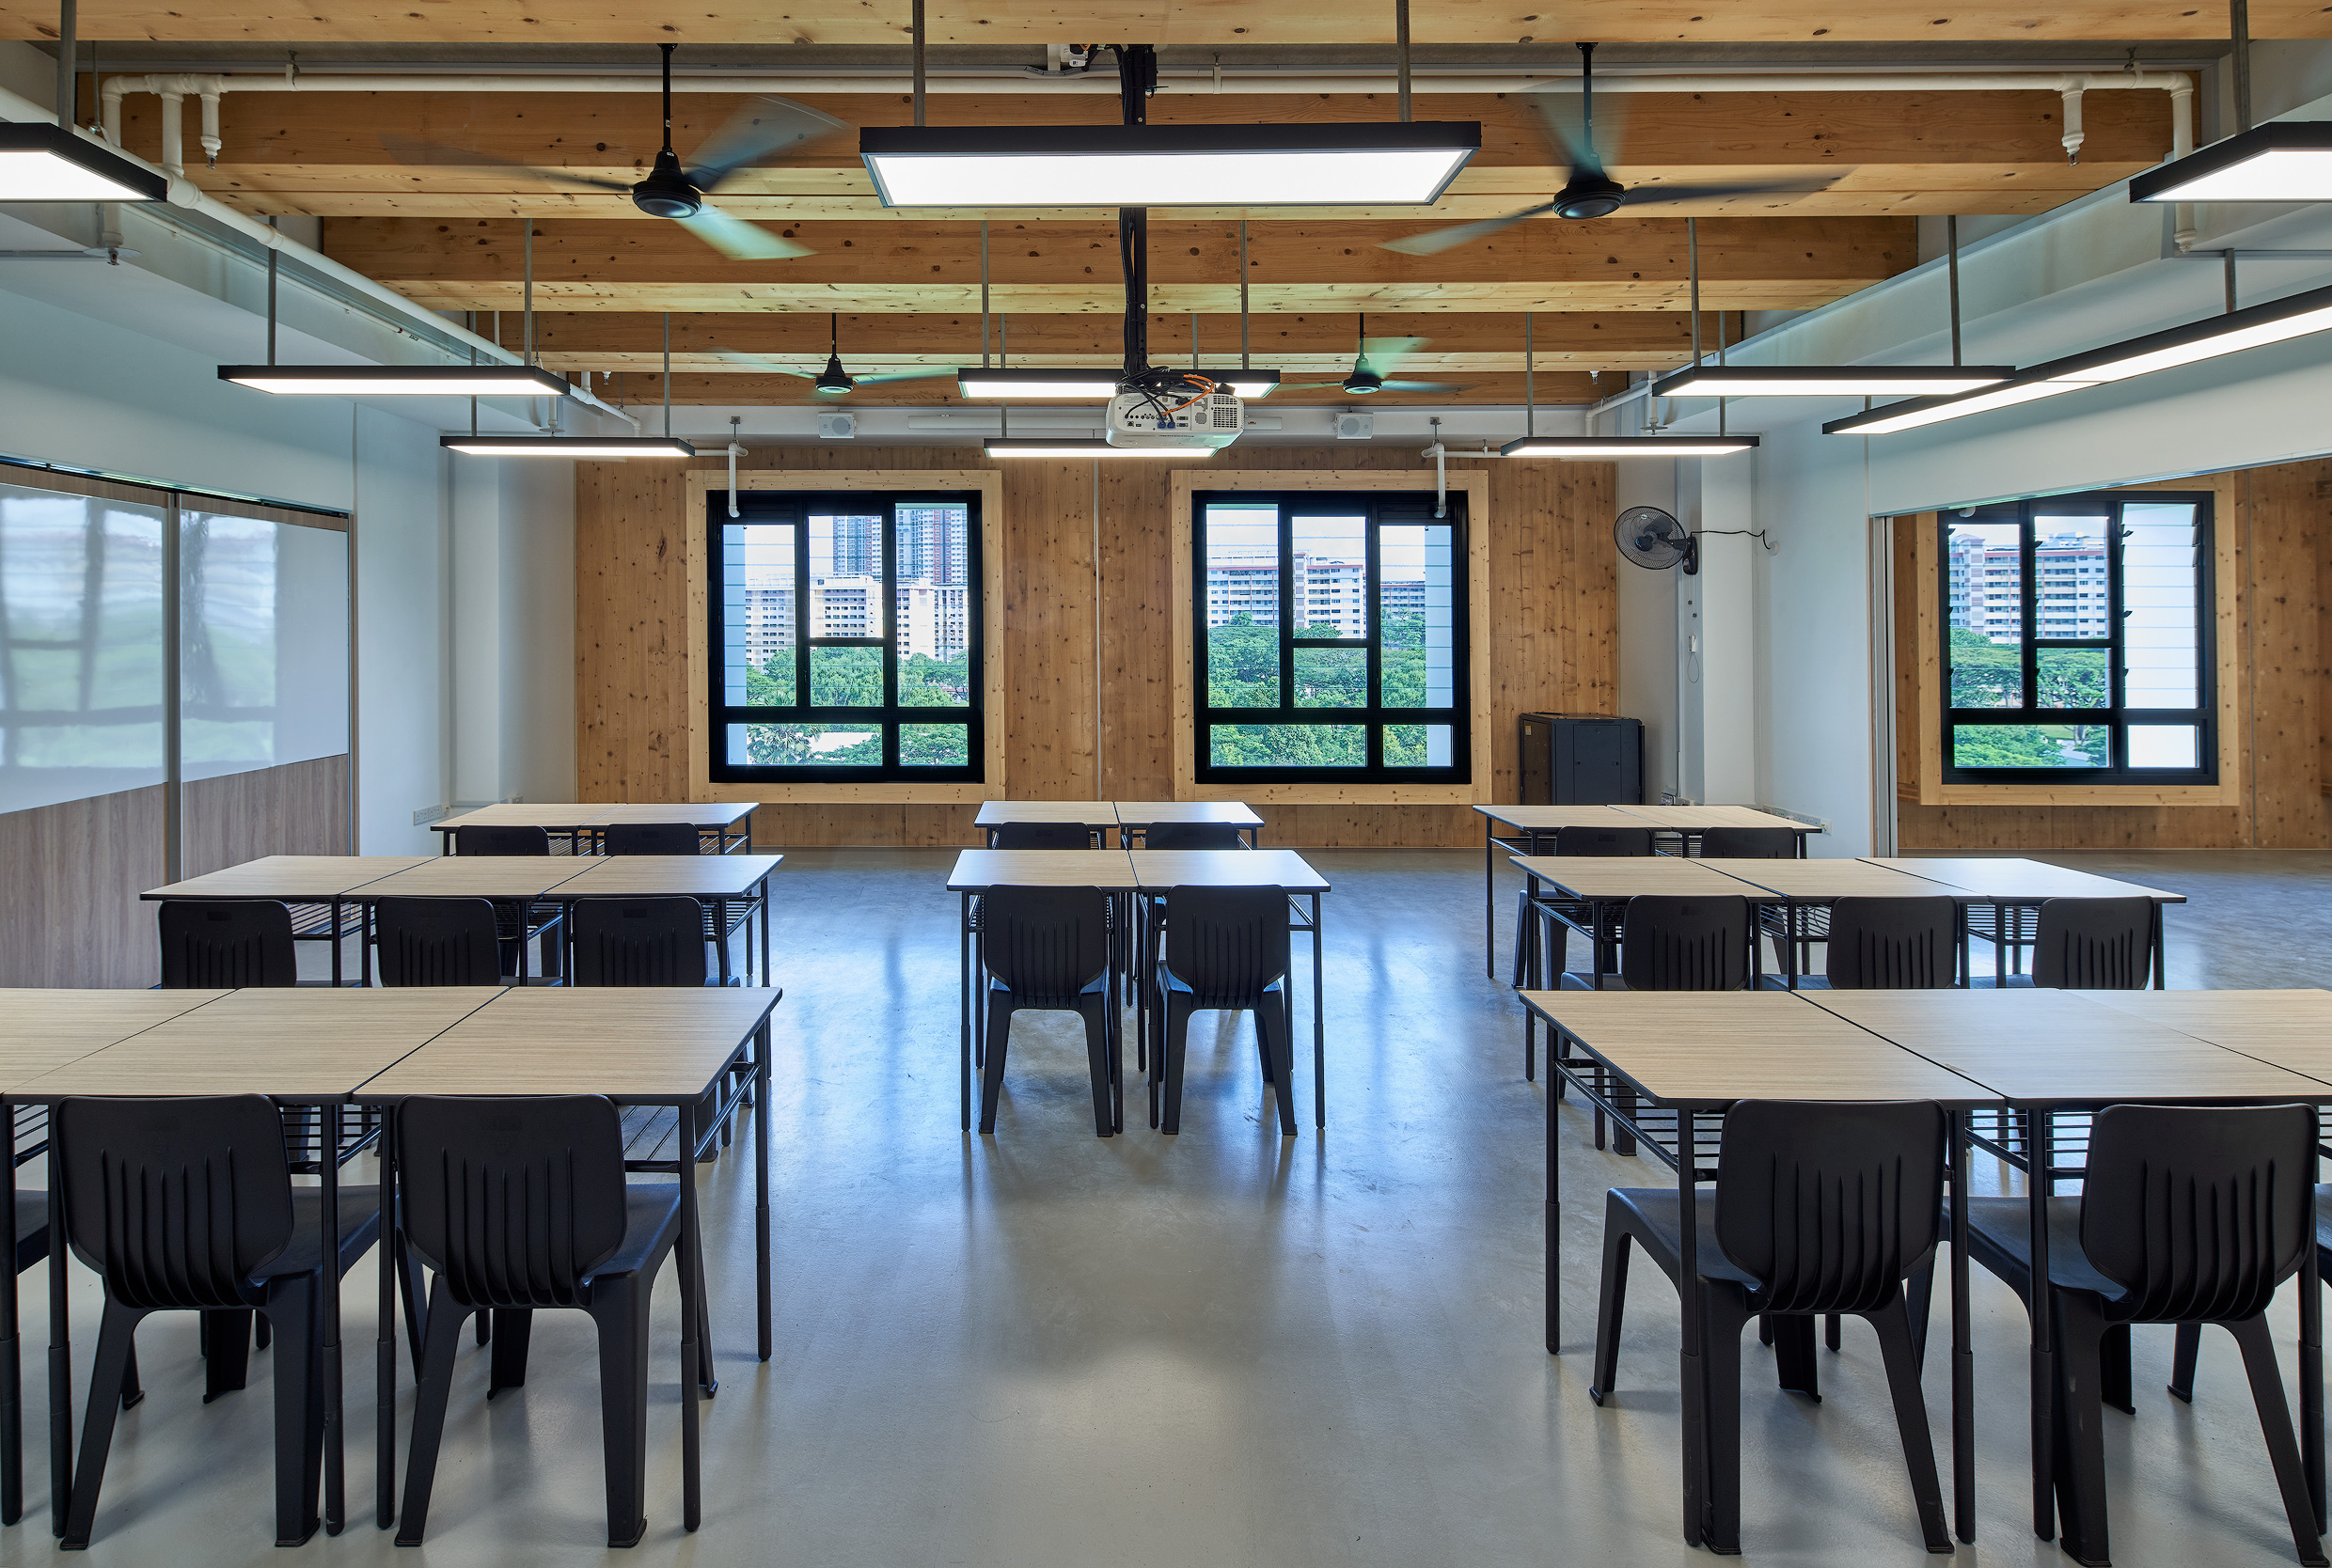 Using Mass Engineered Timber improves environmental sustainability